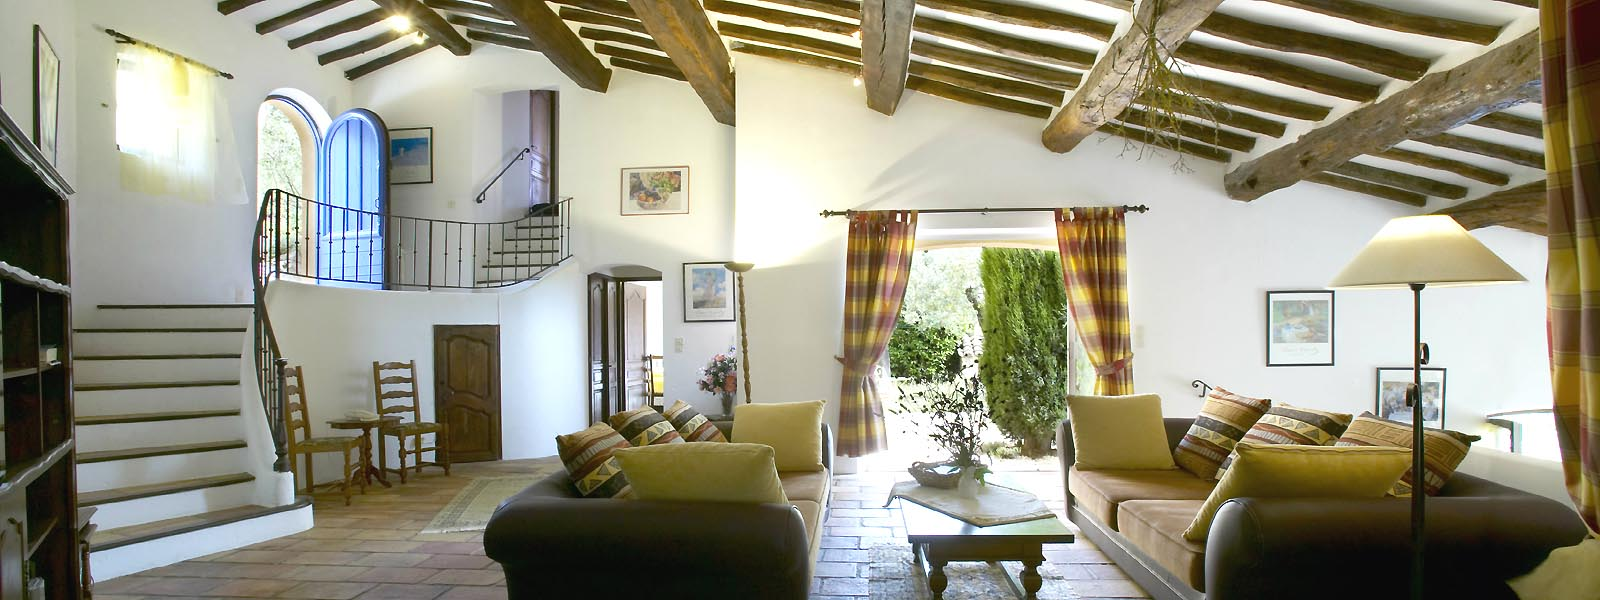 https://www.selectcottages.com/sites/default/files/revslider/image/villa-charmante-lounge-main.jpg